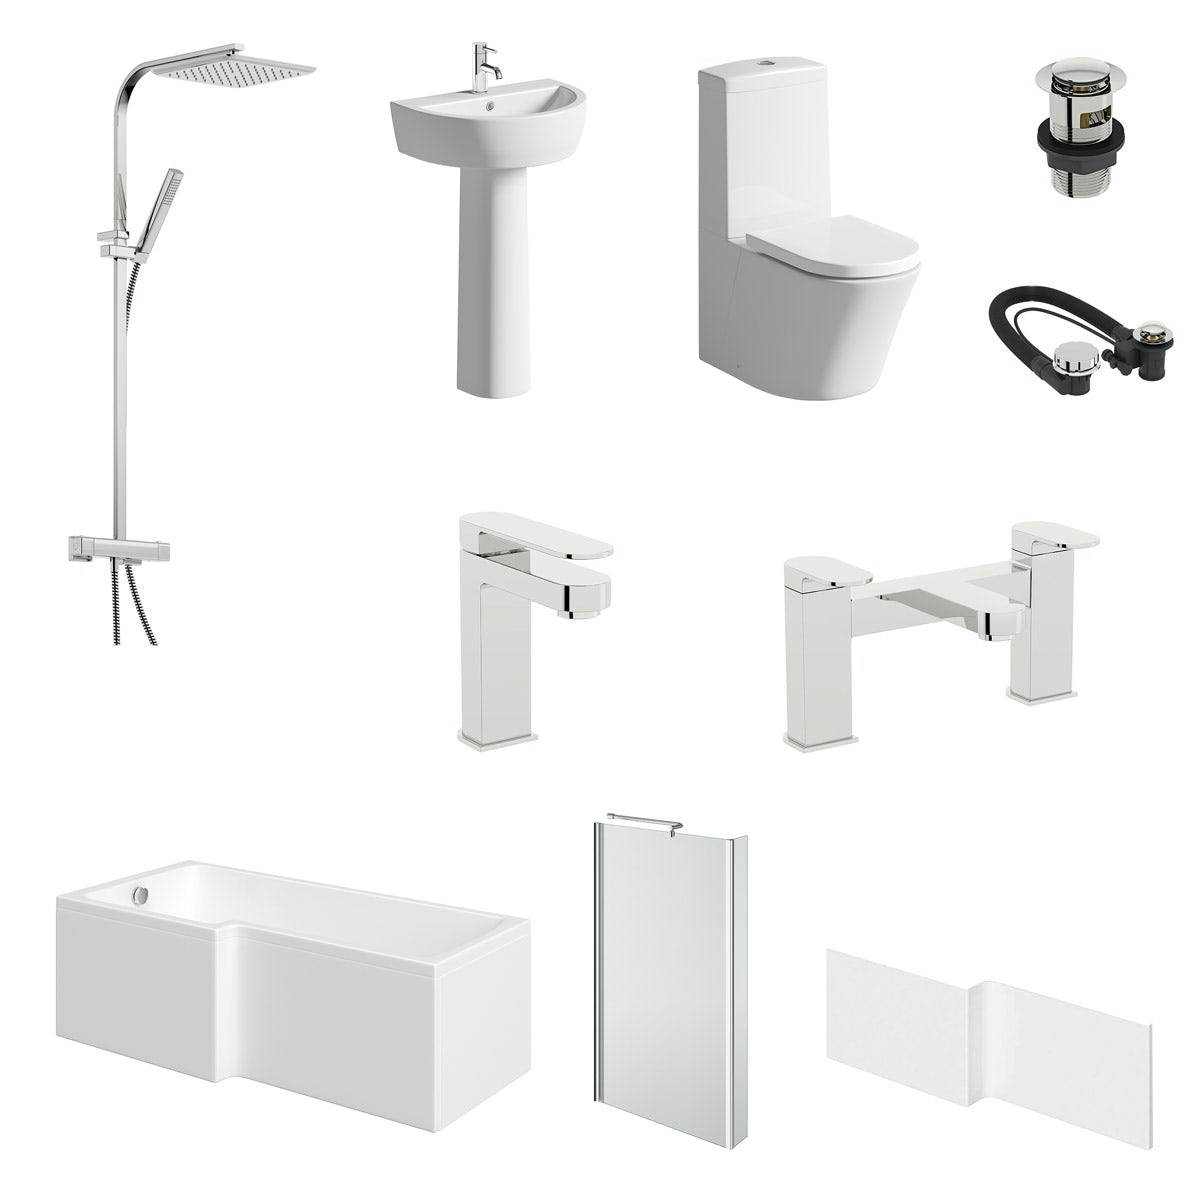 Mode Tate bathroom suite with left hand bath, shower and taps